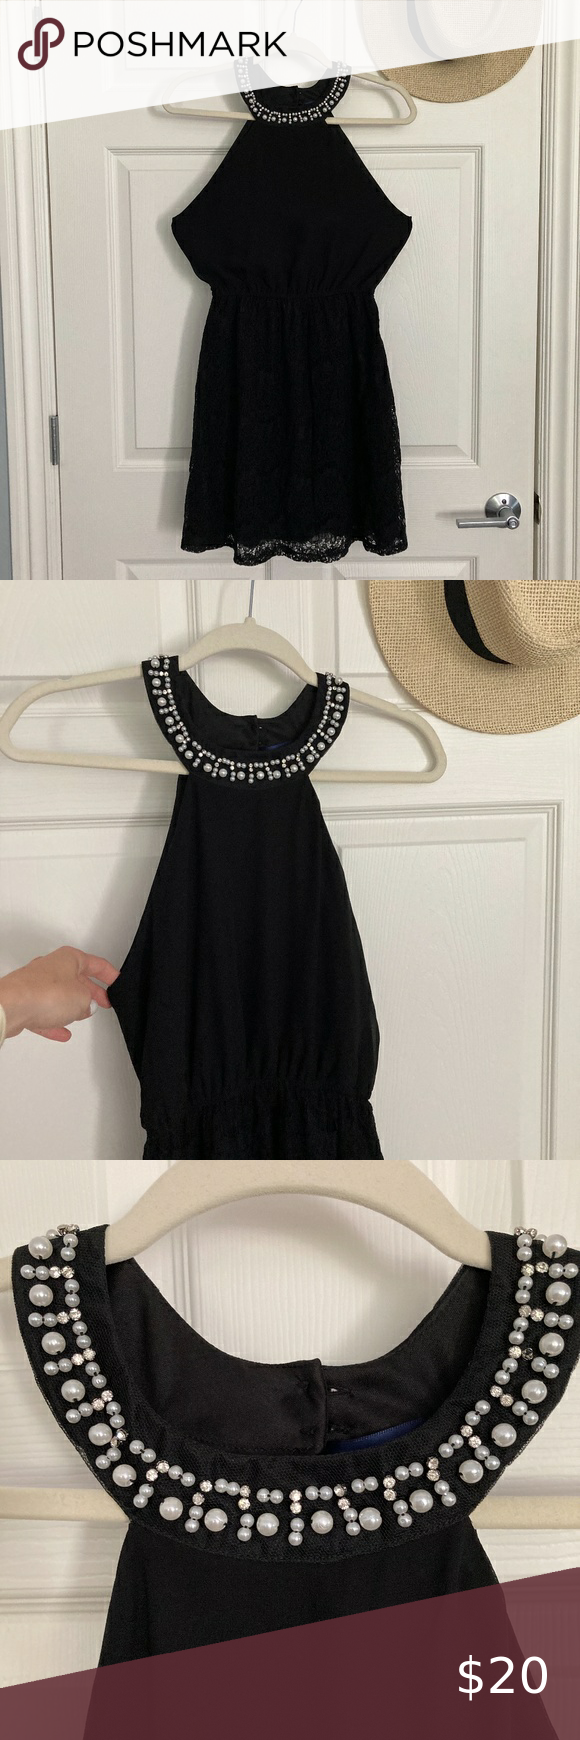 Black Dress With Pearls And Lace In 2020 Dresses Clothes Design Black Dress [ 1740 x 580 Pixel ]